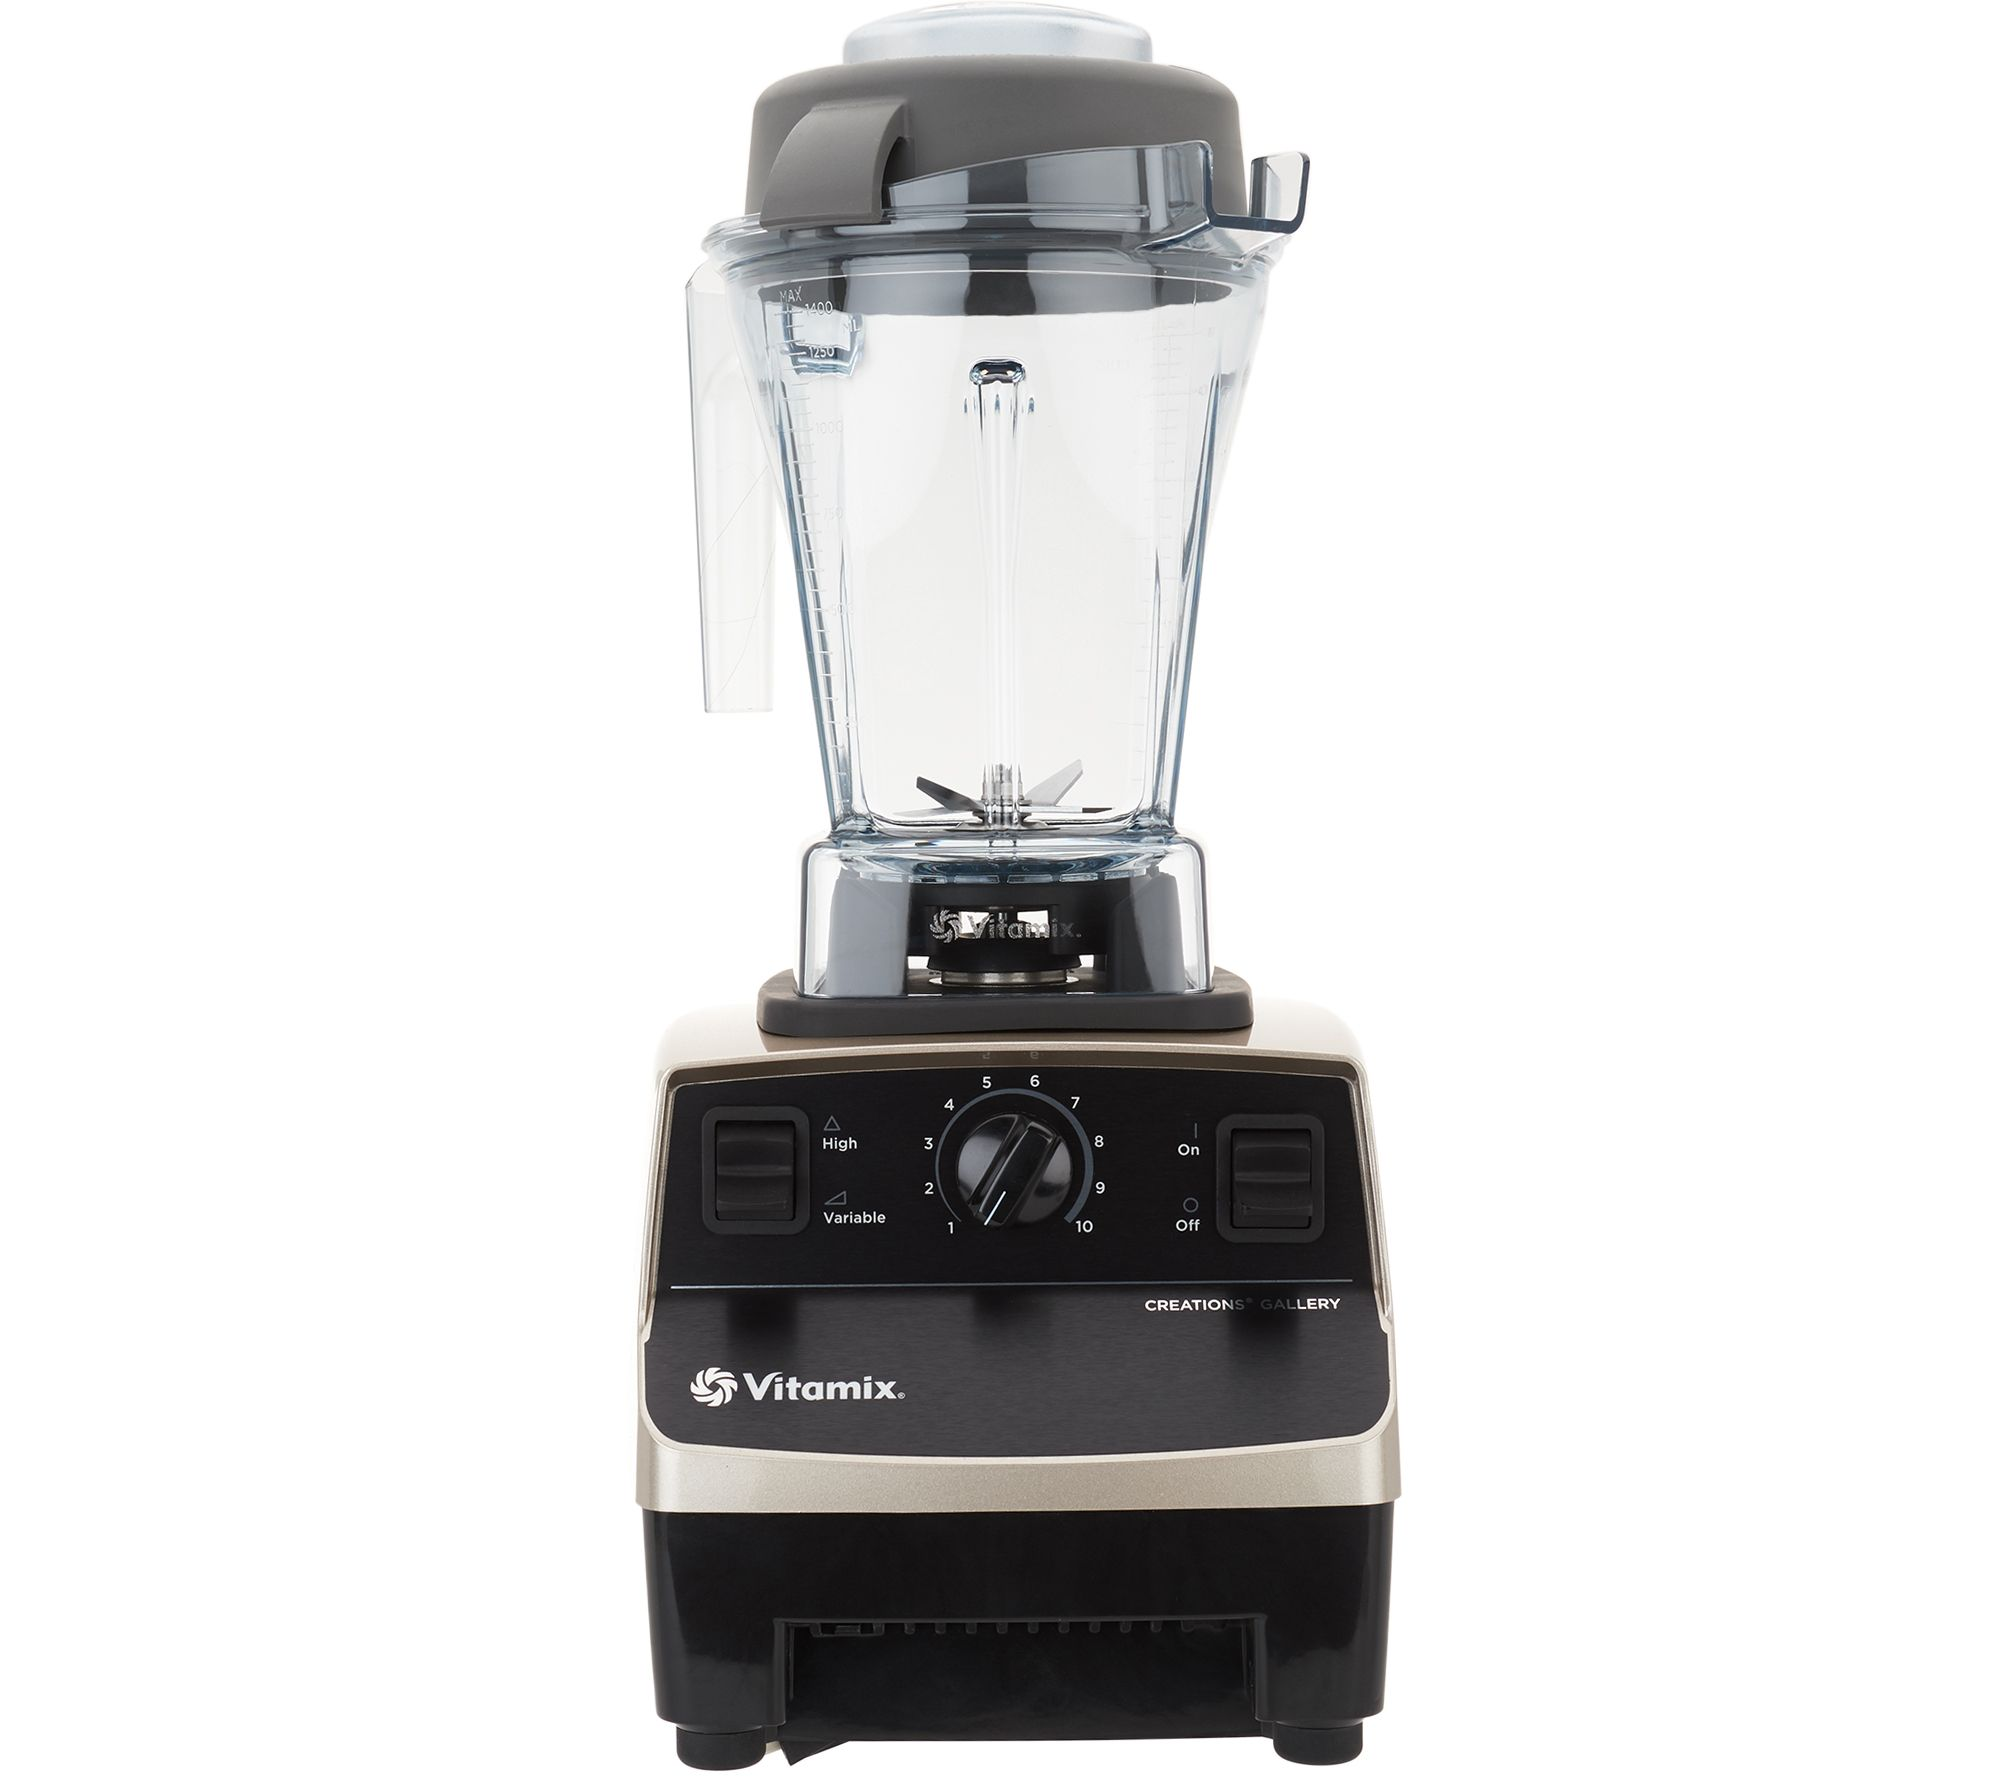 where is the serial number located on a vitamix blender